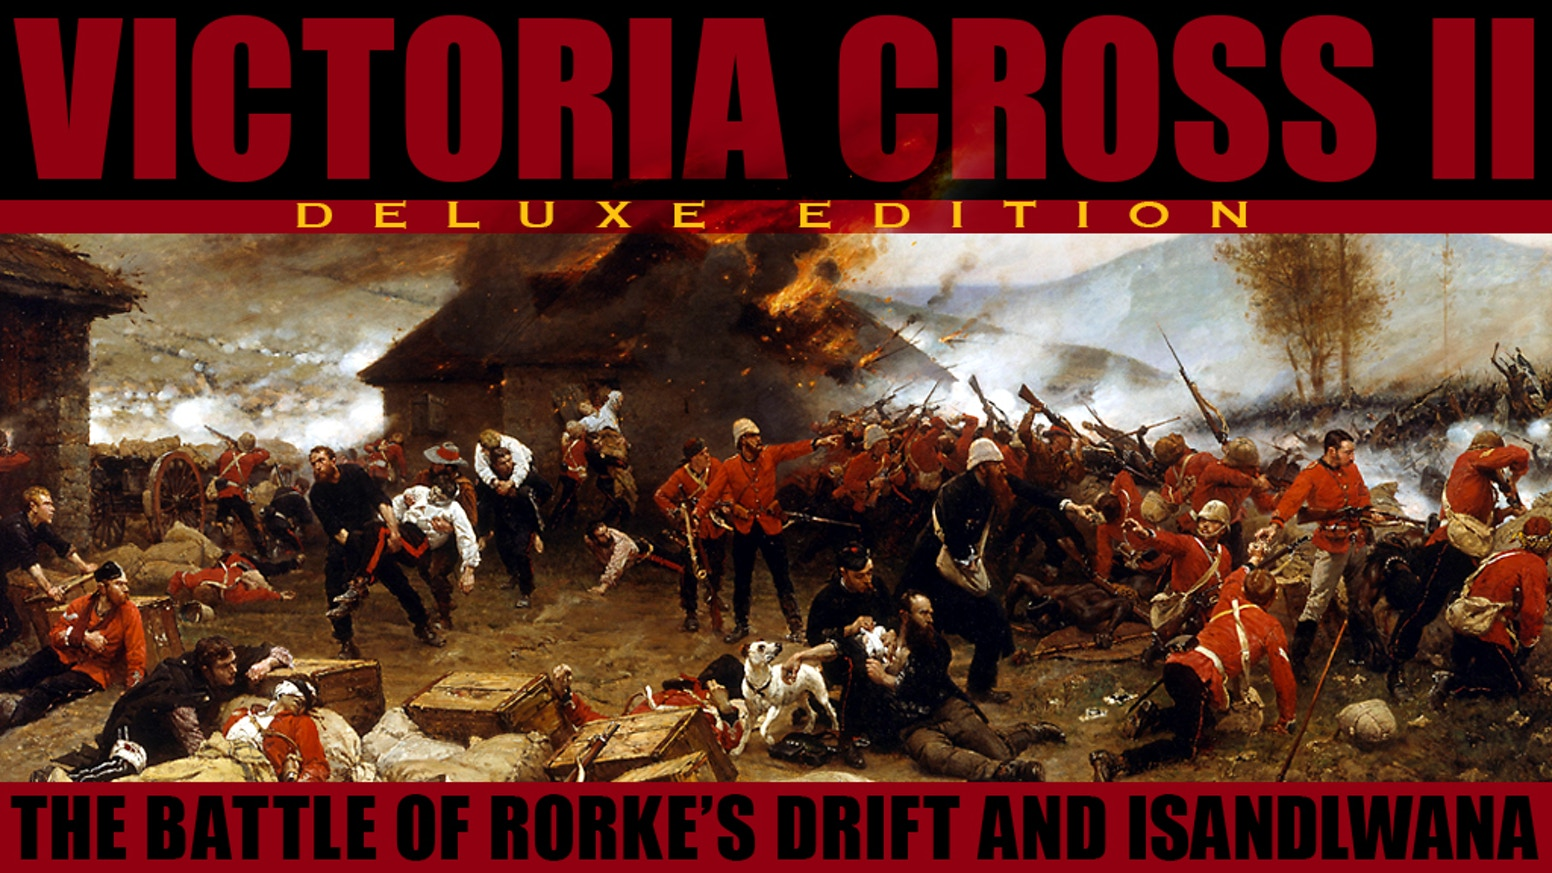 A deluxe edition of Worthington's VICTORIA CROSS II. Playable by 1 to 2 players in under 2 hours. Two games in one box.